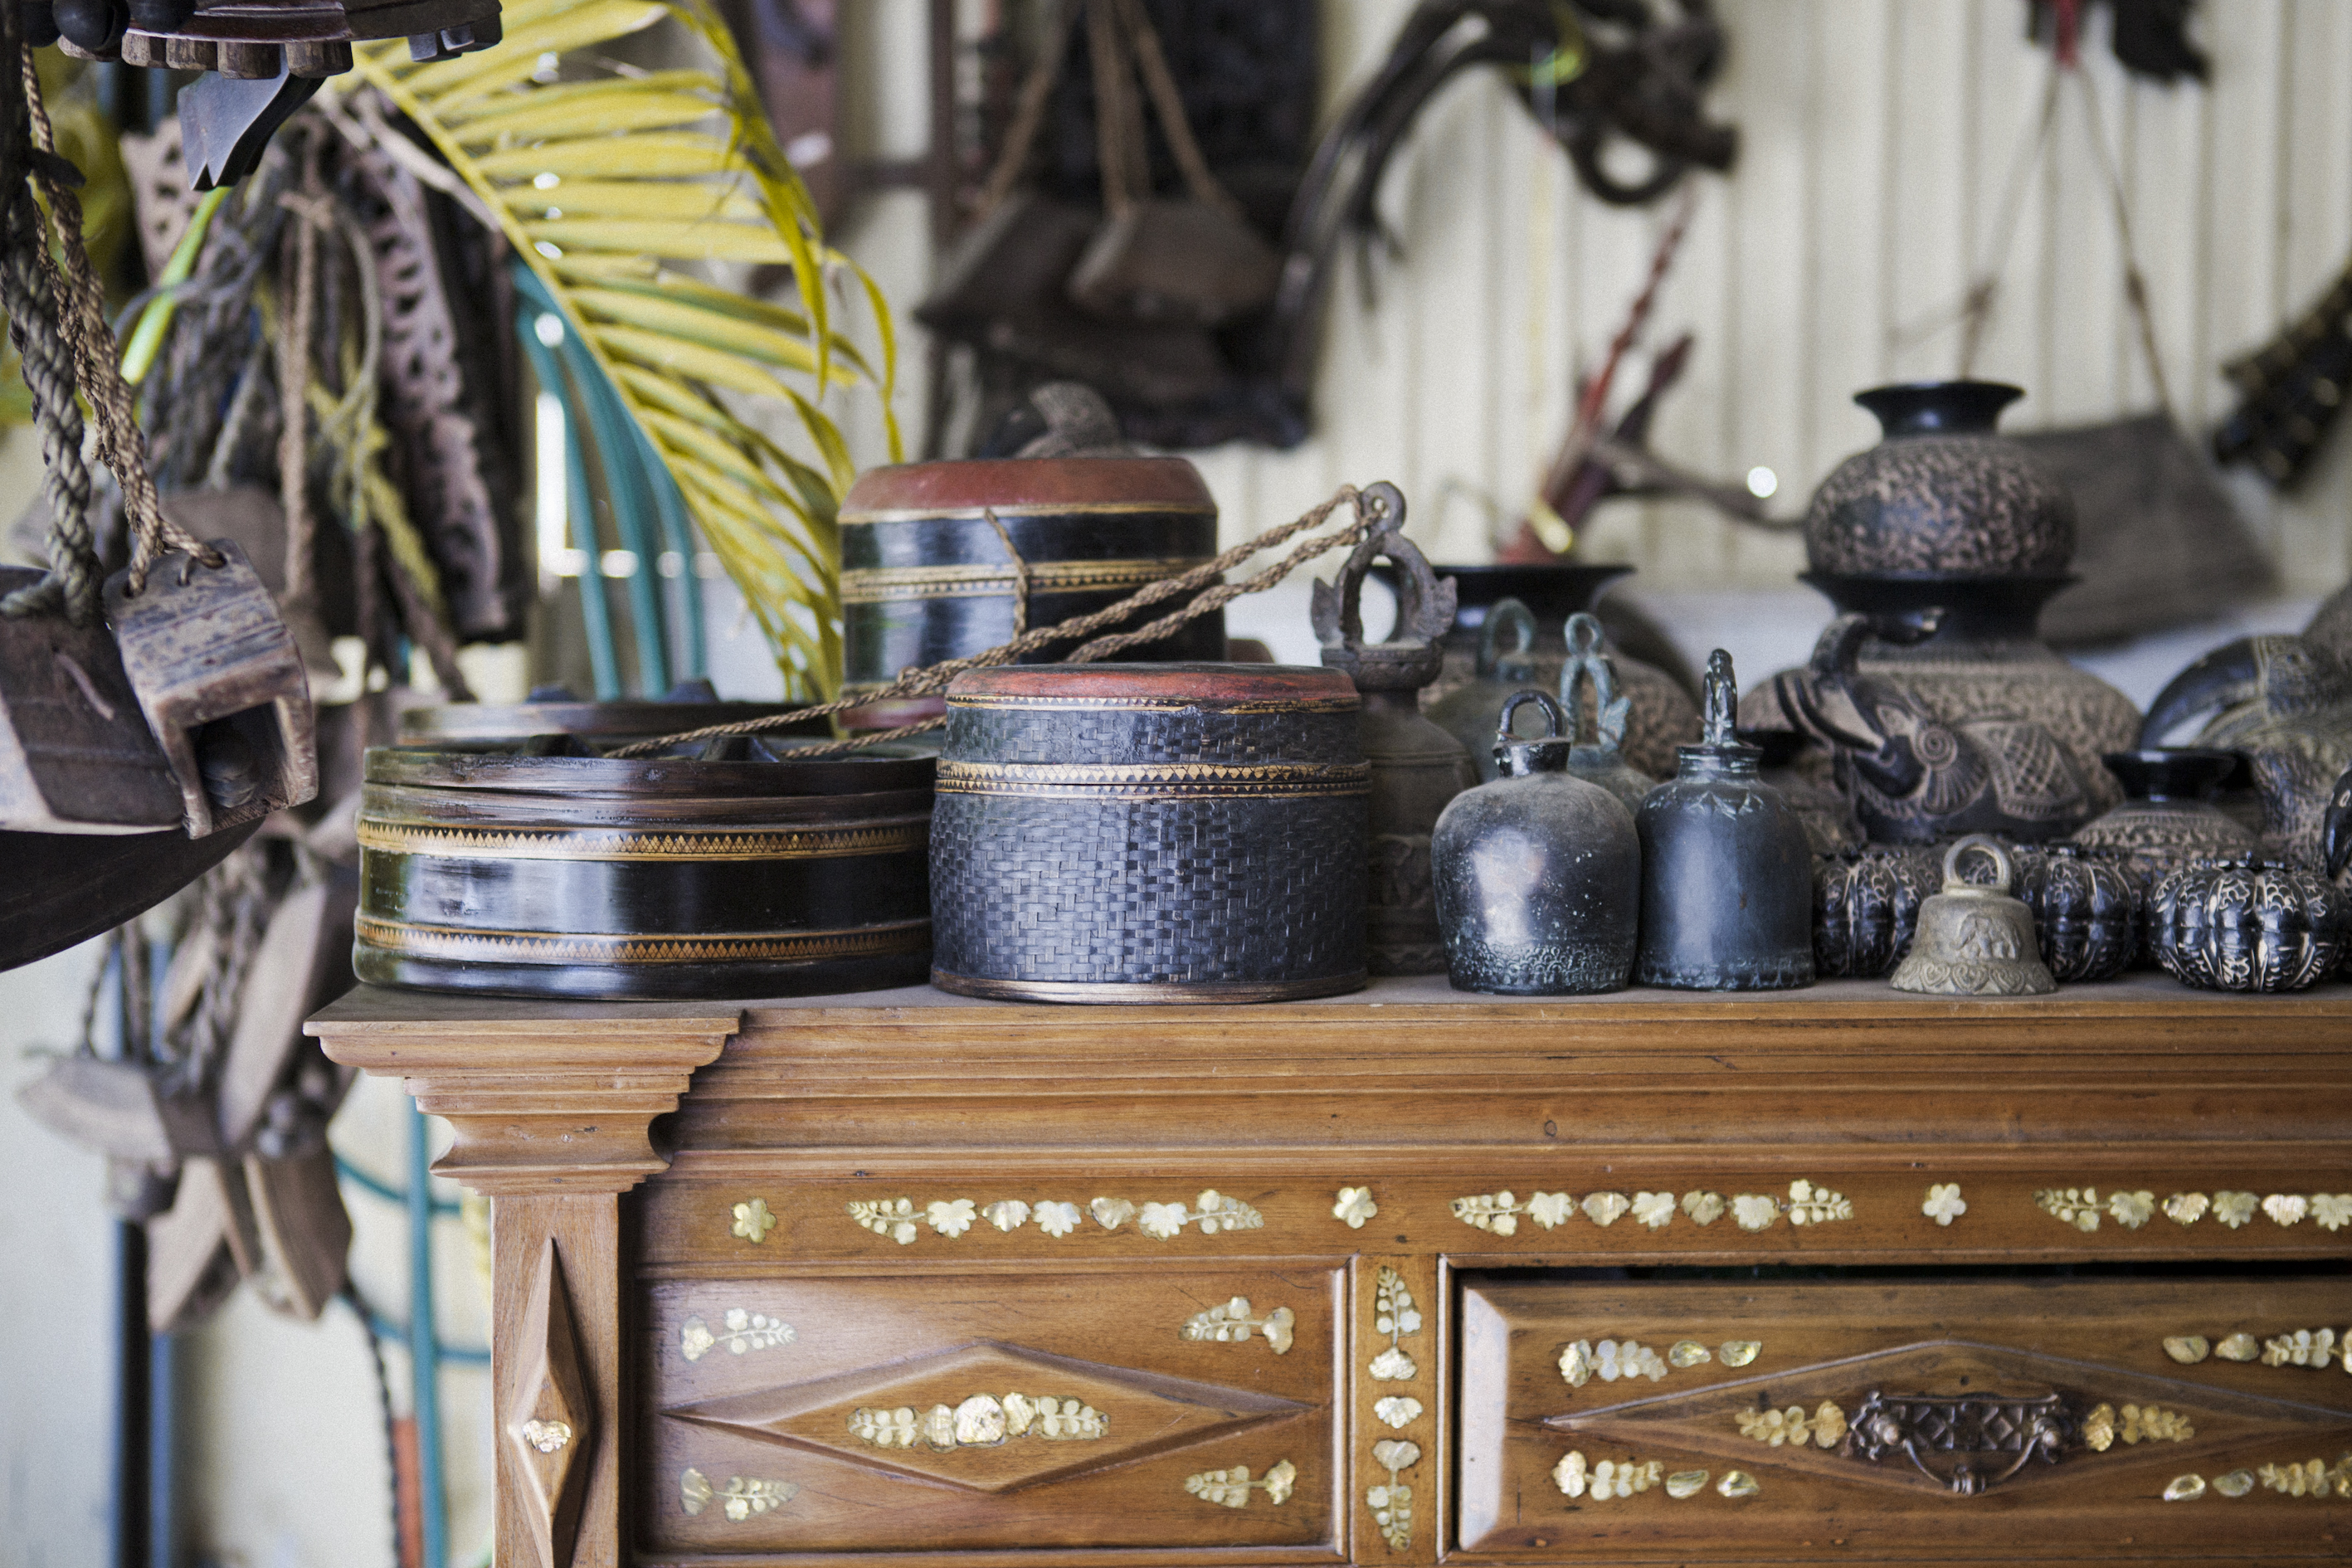 Bronze Bells, Bamboo Containers, Carved Cow Bells Phnom Penh Cambodia Asia Antiques Buying Tours with The Antiques Diva